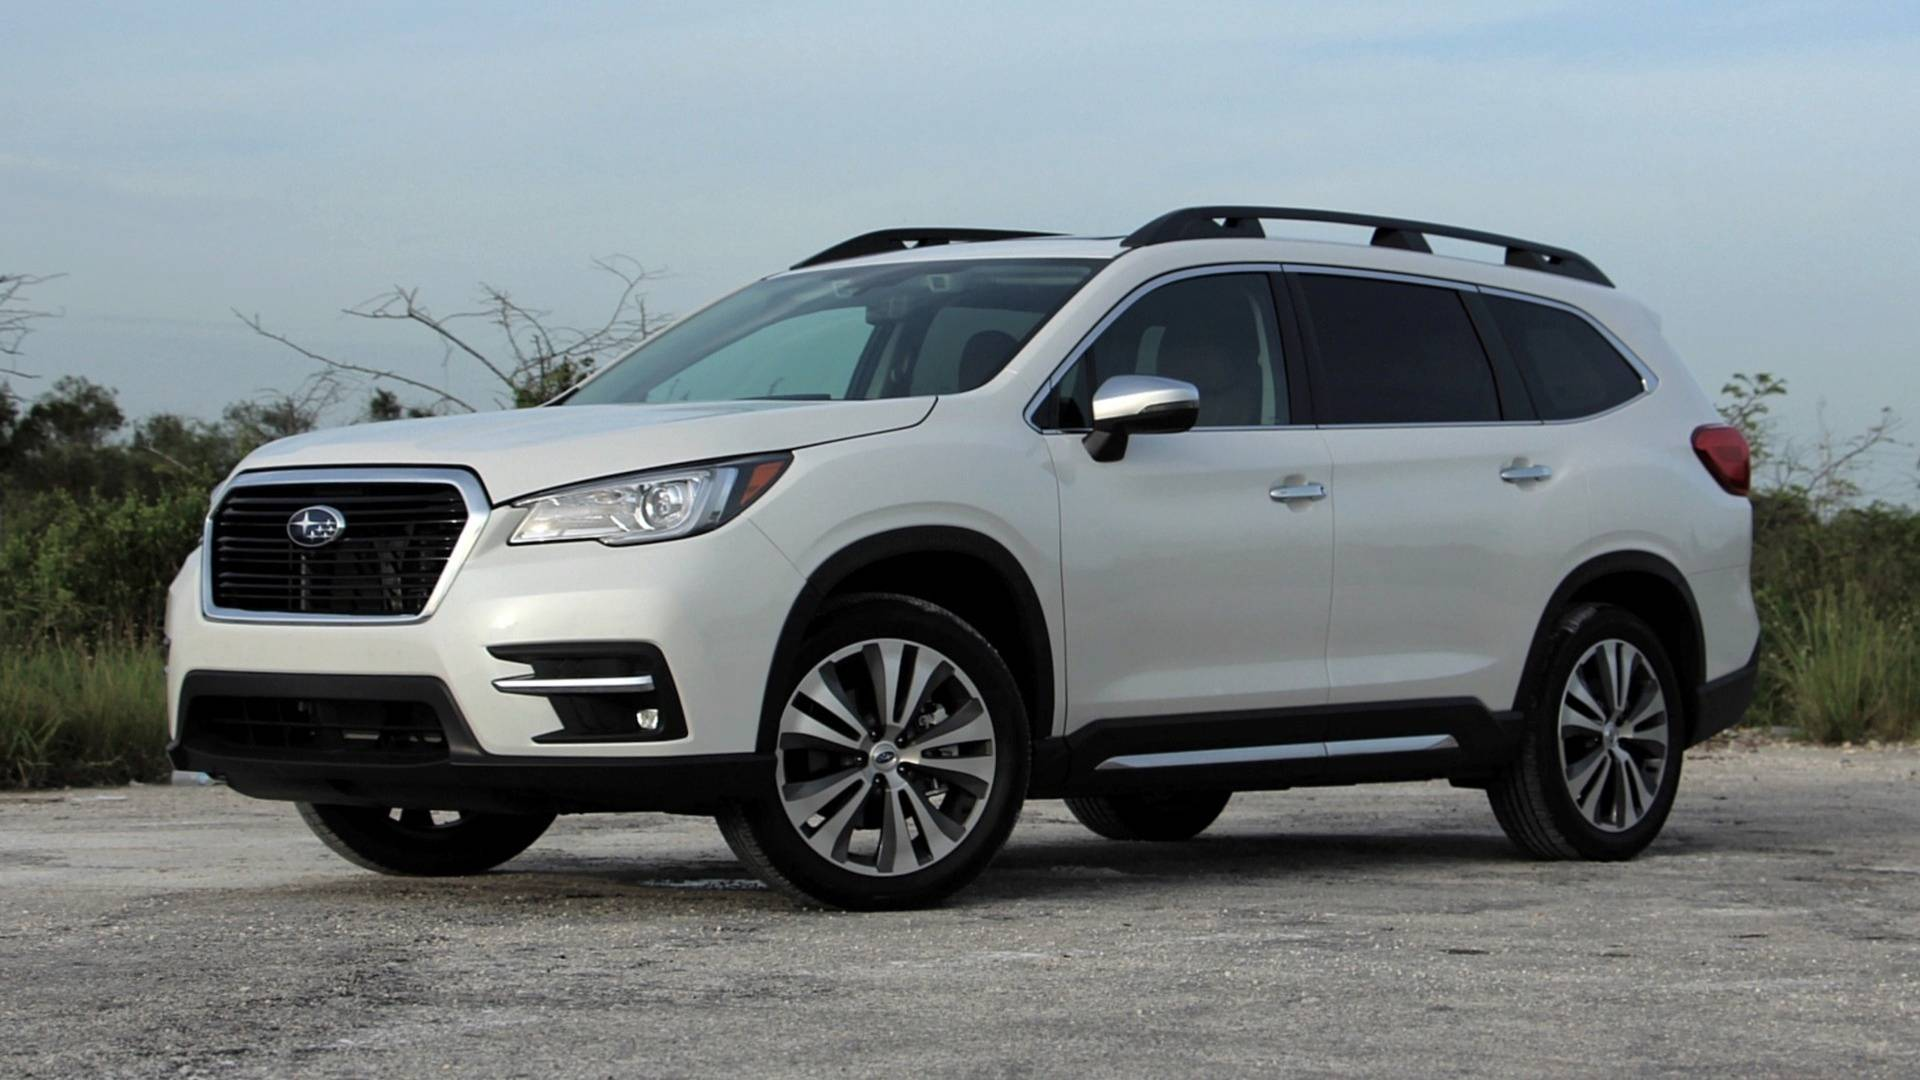 Best All Weather Floor Mats >> 2019 Subaru Ascent Review: Reaching New Heights